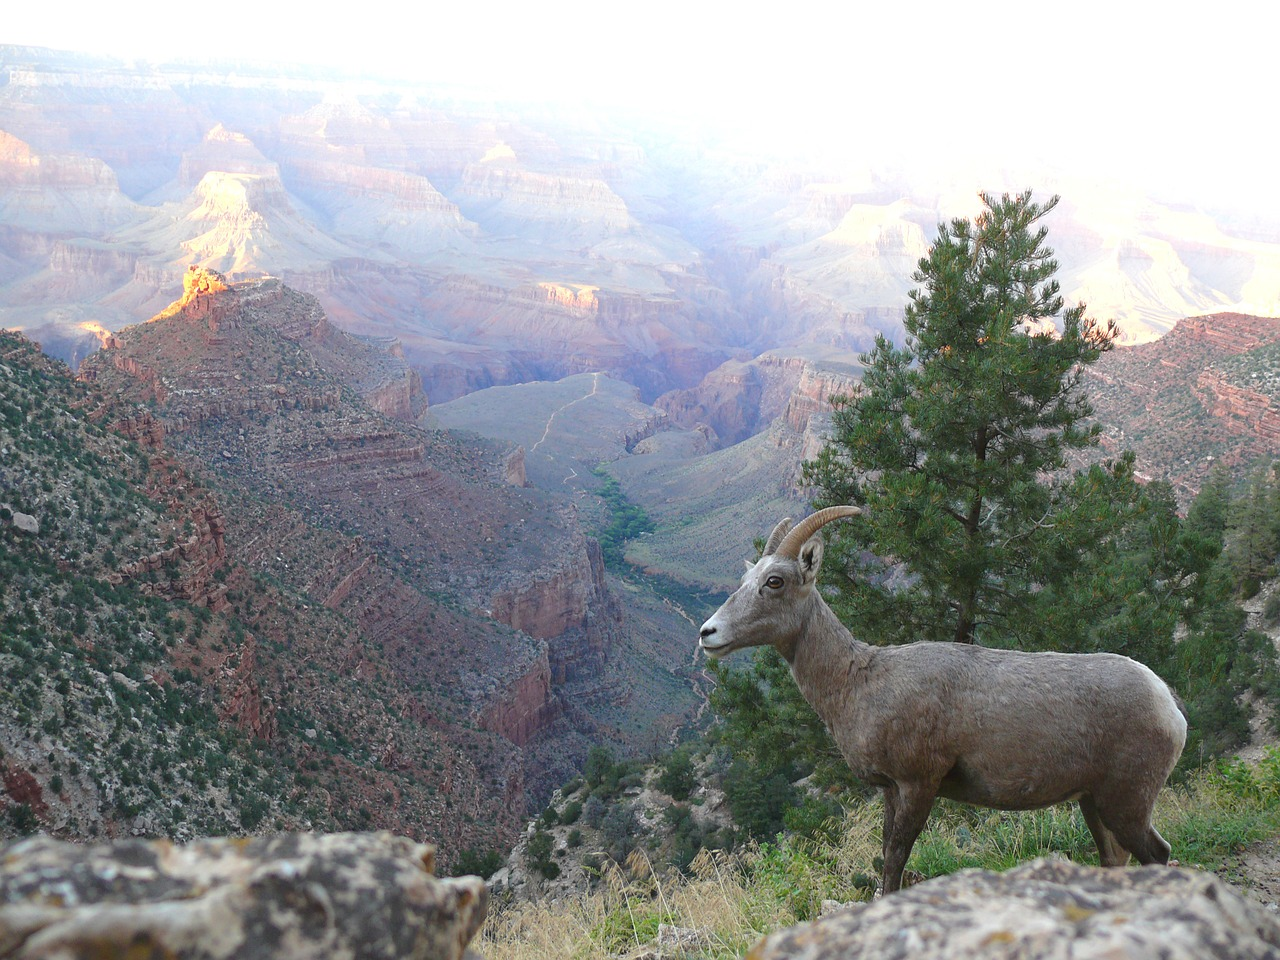 Mountain sheep navigates a slope overlooking the Grand Canyon.